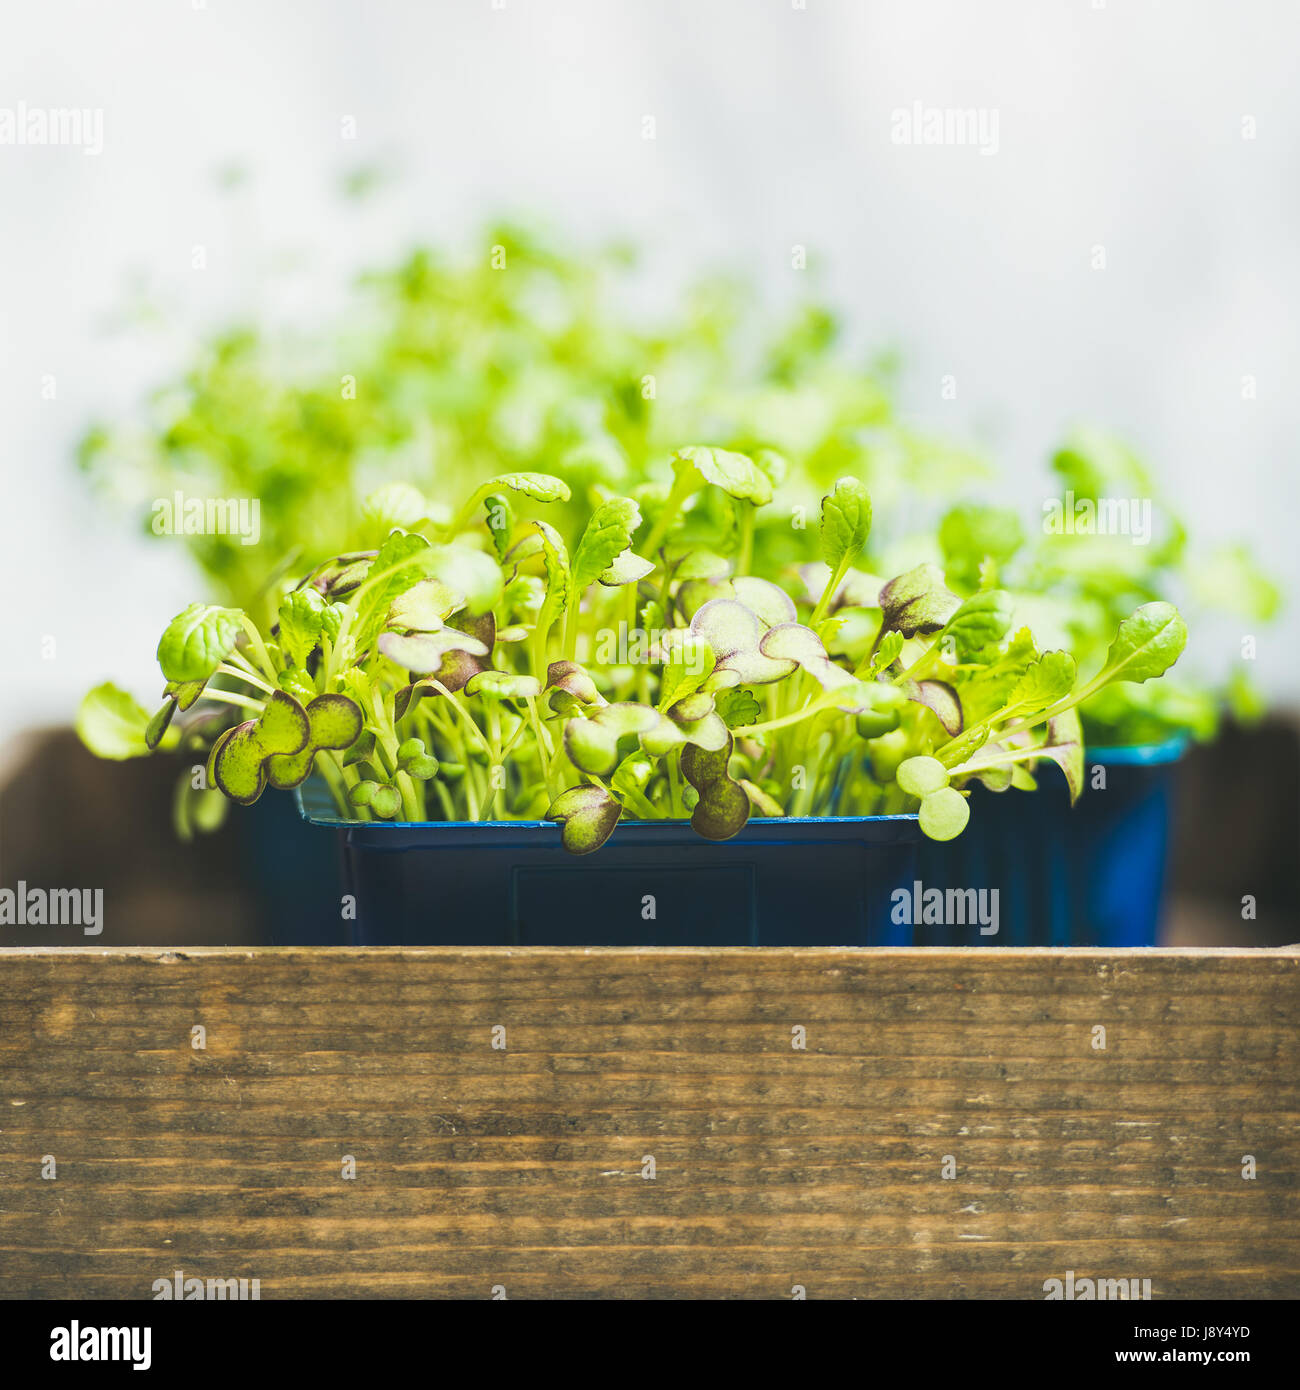 Fresh spring green live radish kress sprouts, square crop - Stock Image